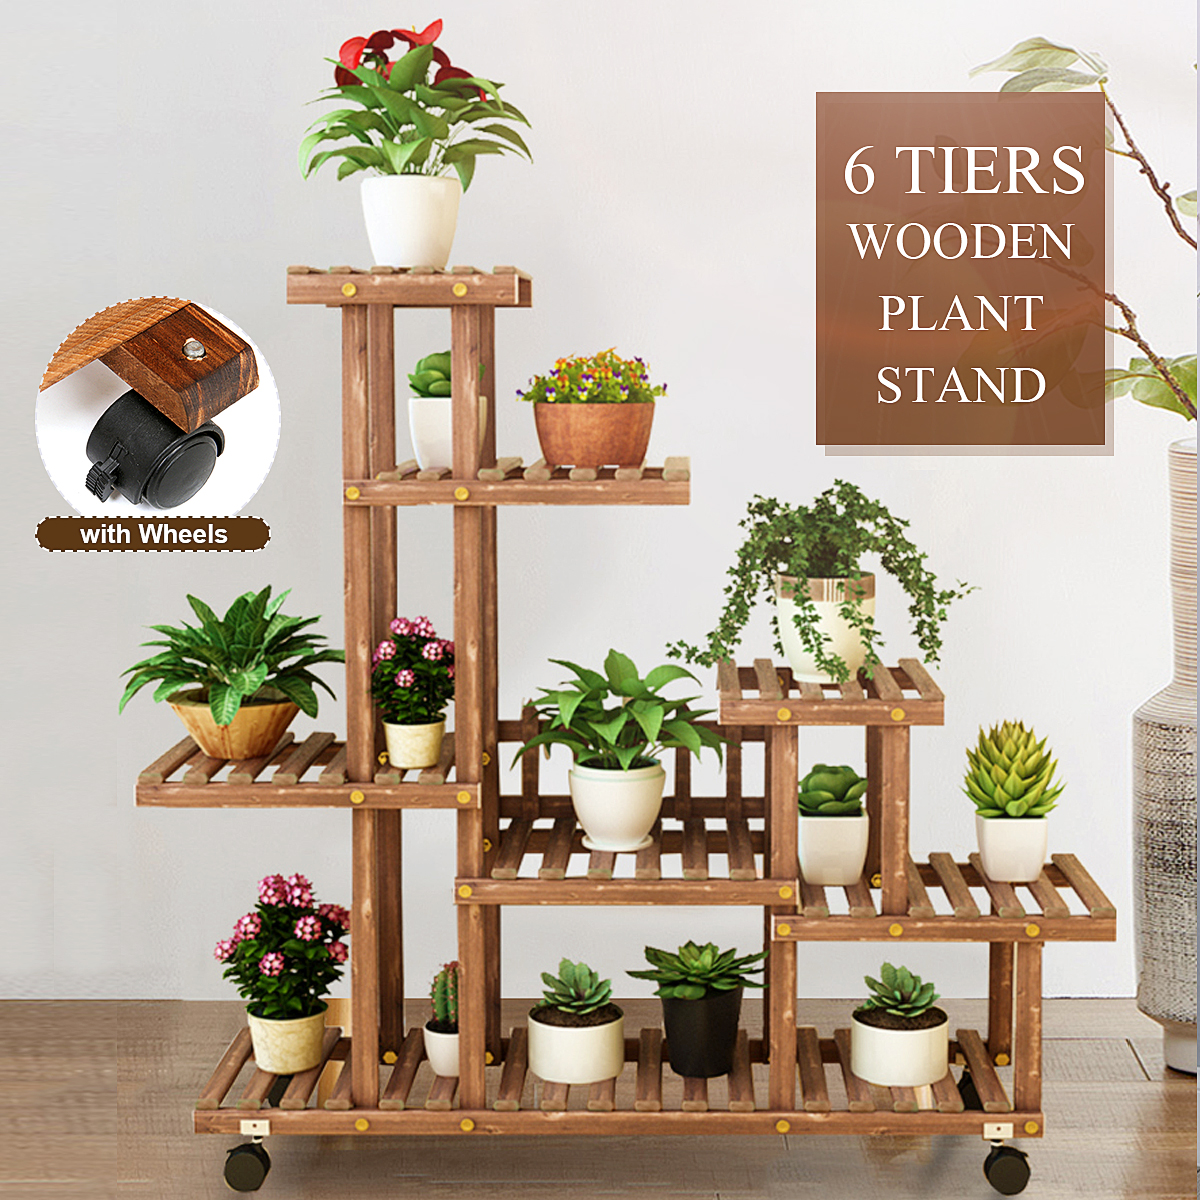 6 tier with wheels pot flower wooden plant stand movable shelf wood planters shelving rack raised garden beds for indoors outdoor patio yard home